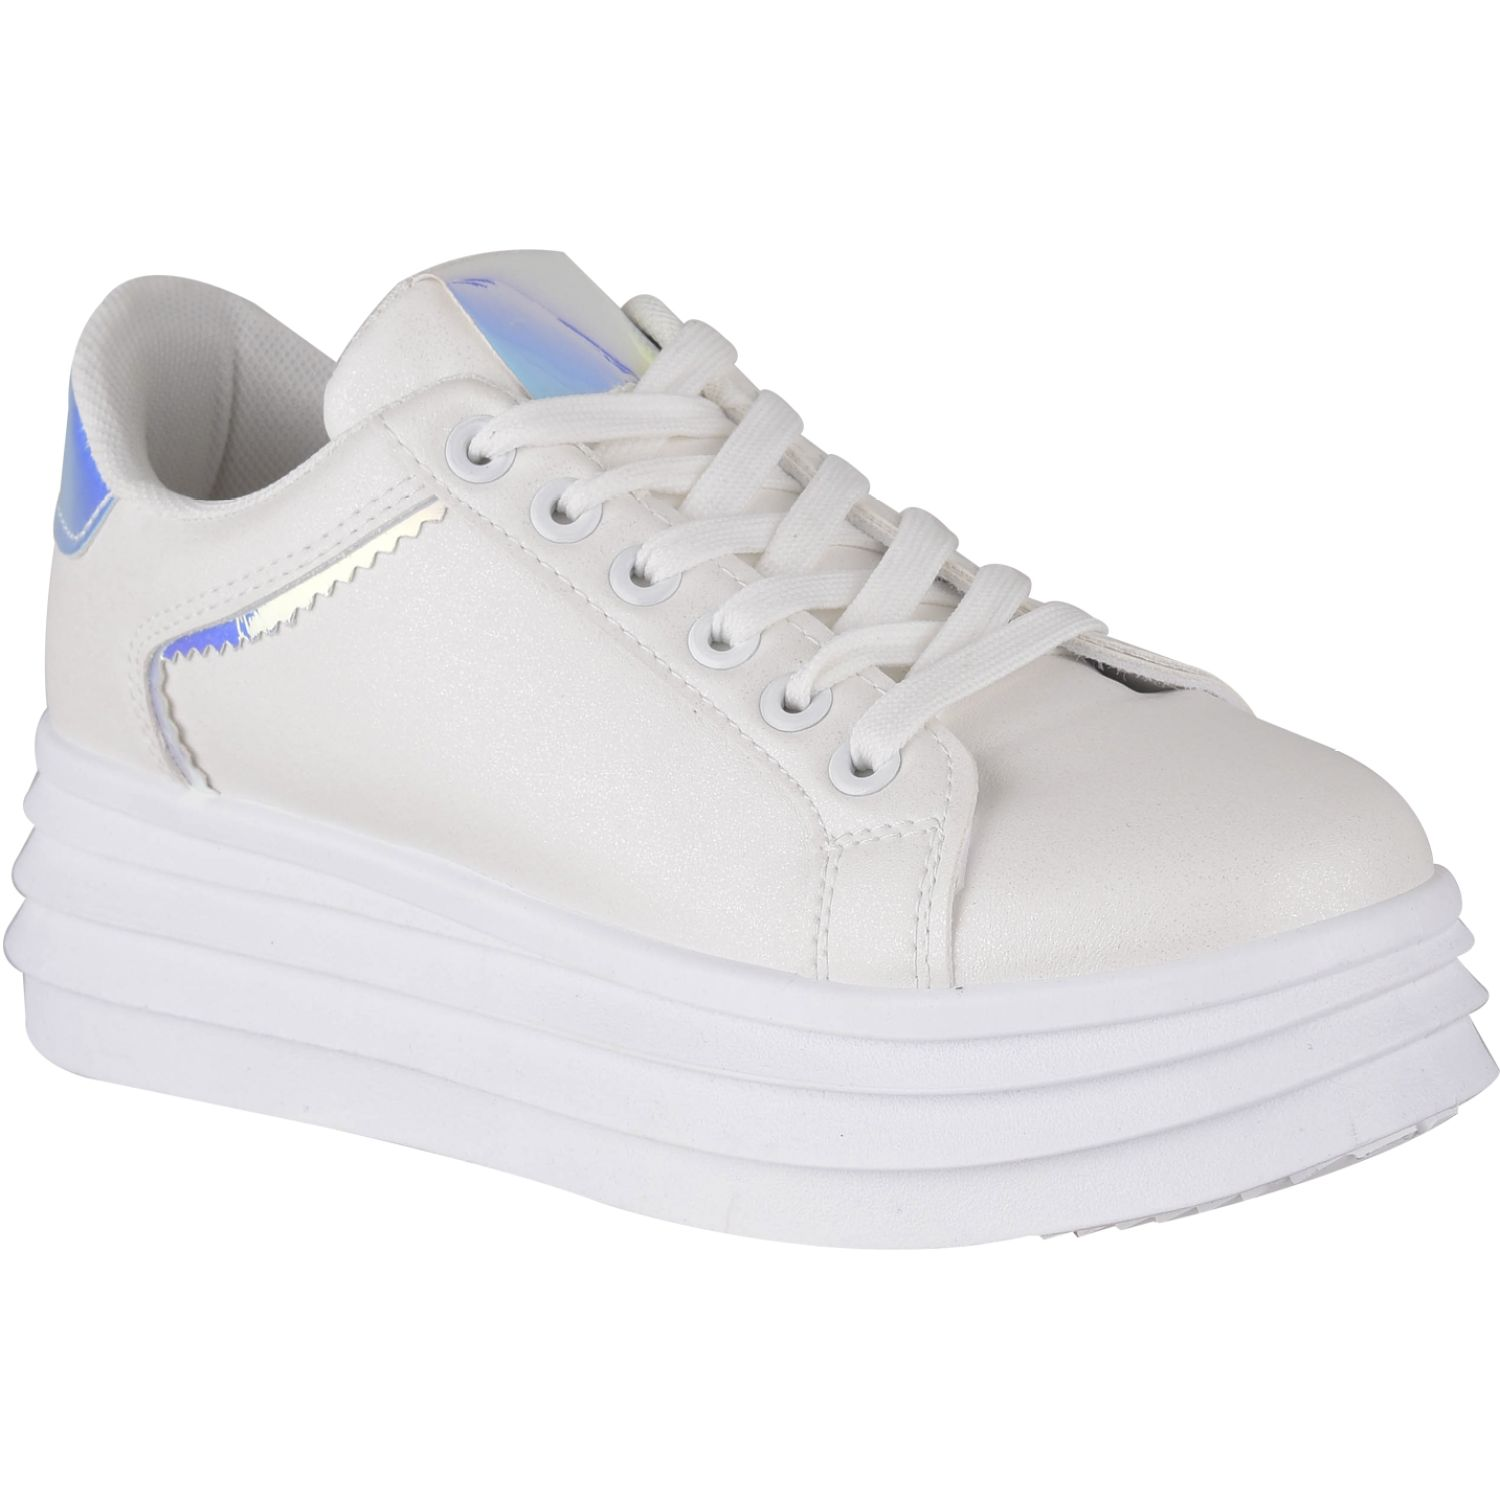 Platanitos zc 1205 Blanco Zapatillas Fashion